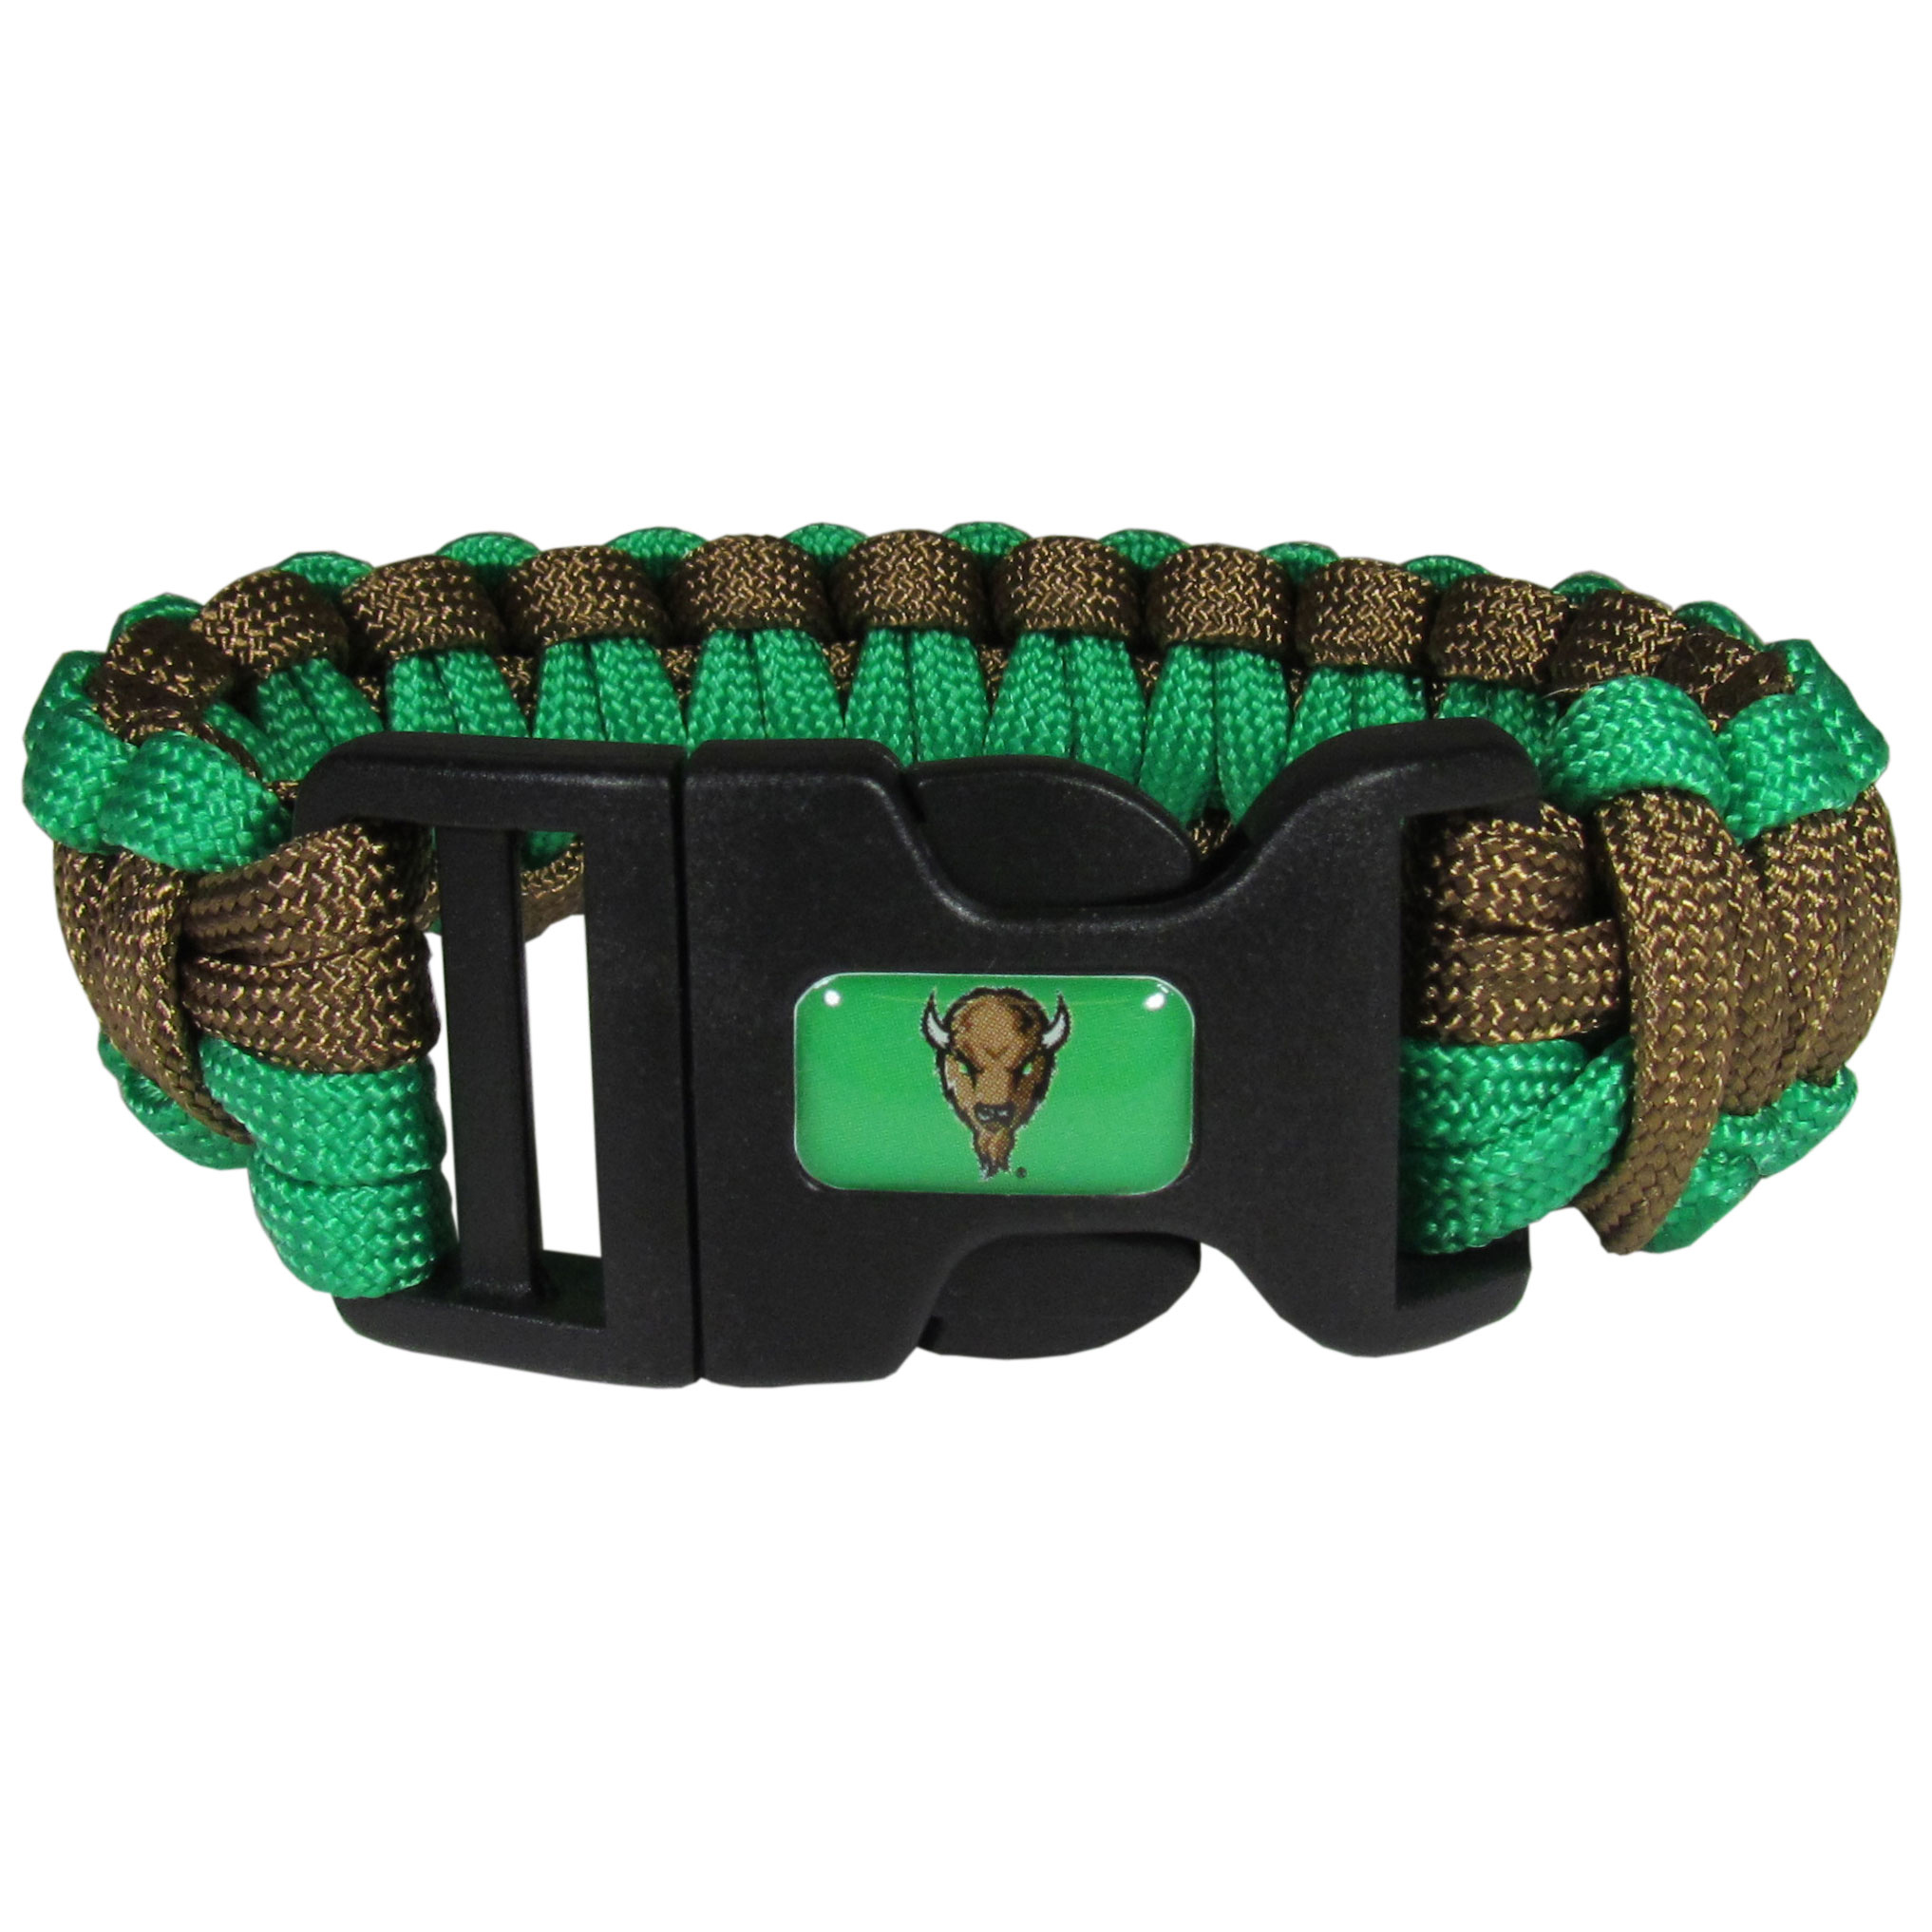 Marshall Thundering Herd Survivor Bracelet - Our functional and fashionable Marshall Thundering Herd survivor bracelets contain 2 individual 300lb test paracord rated cords that are each 5 feet long. The team colored cords can be pulled apart to be used in any number of emergencies and look great while worn. The bracelet features a team emblem on the clasp.